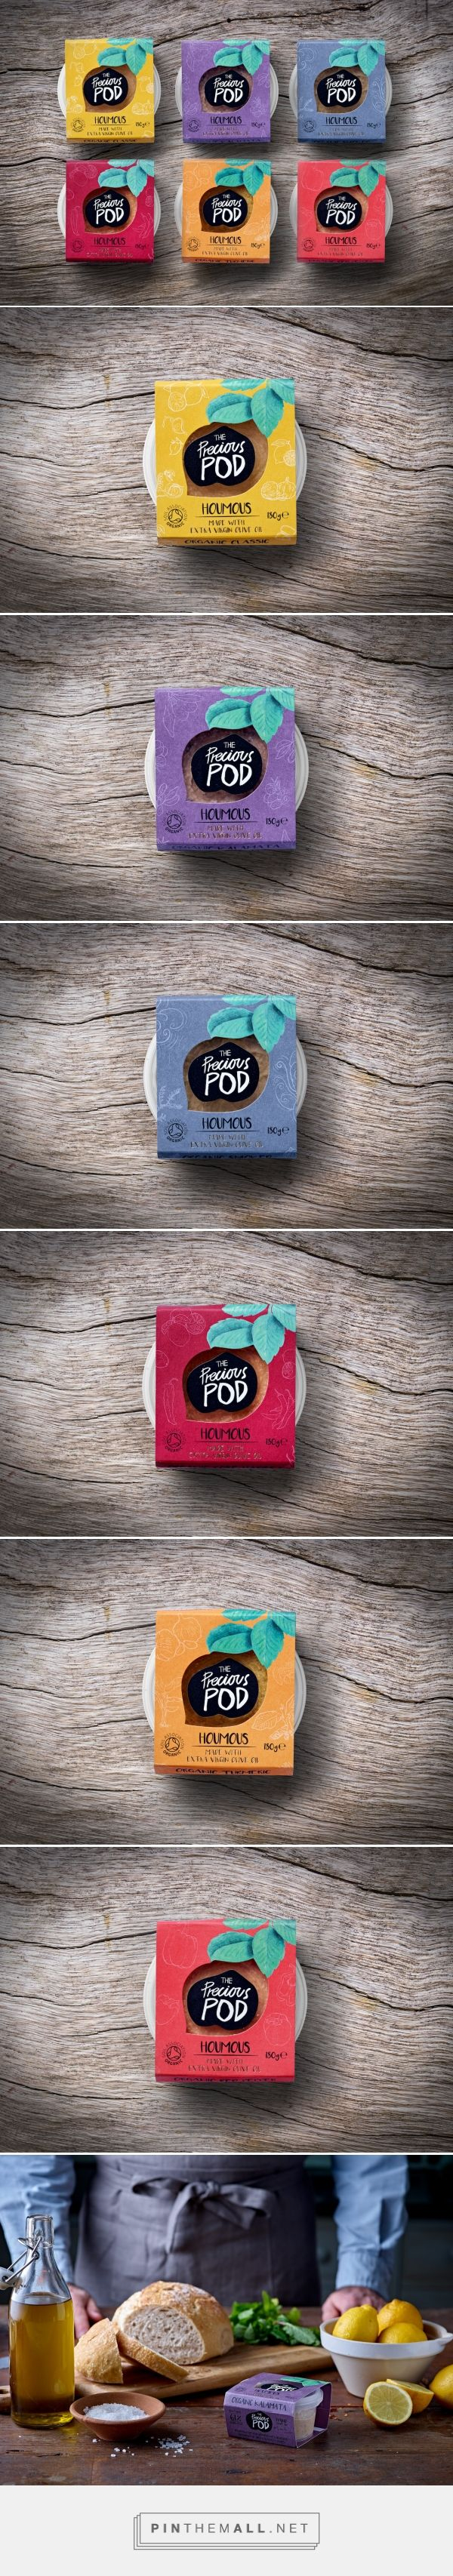 The Precious Pod - Packaging of the World - Creative Package Design Gallery - http://www.packagingoftheworld.com/2017/02/the-precious-pod.html